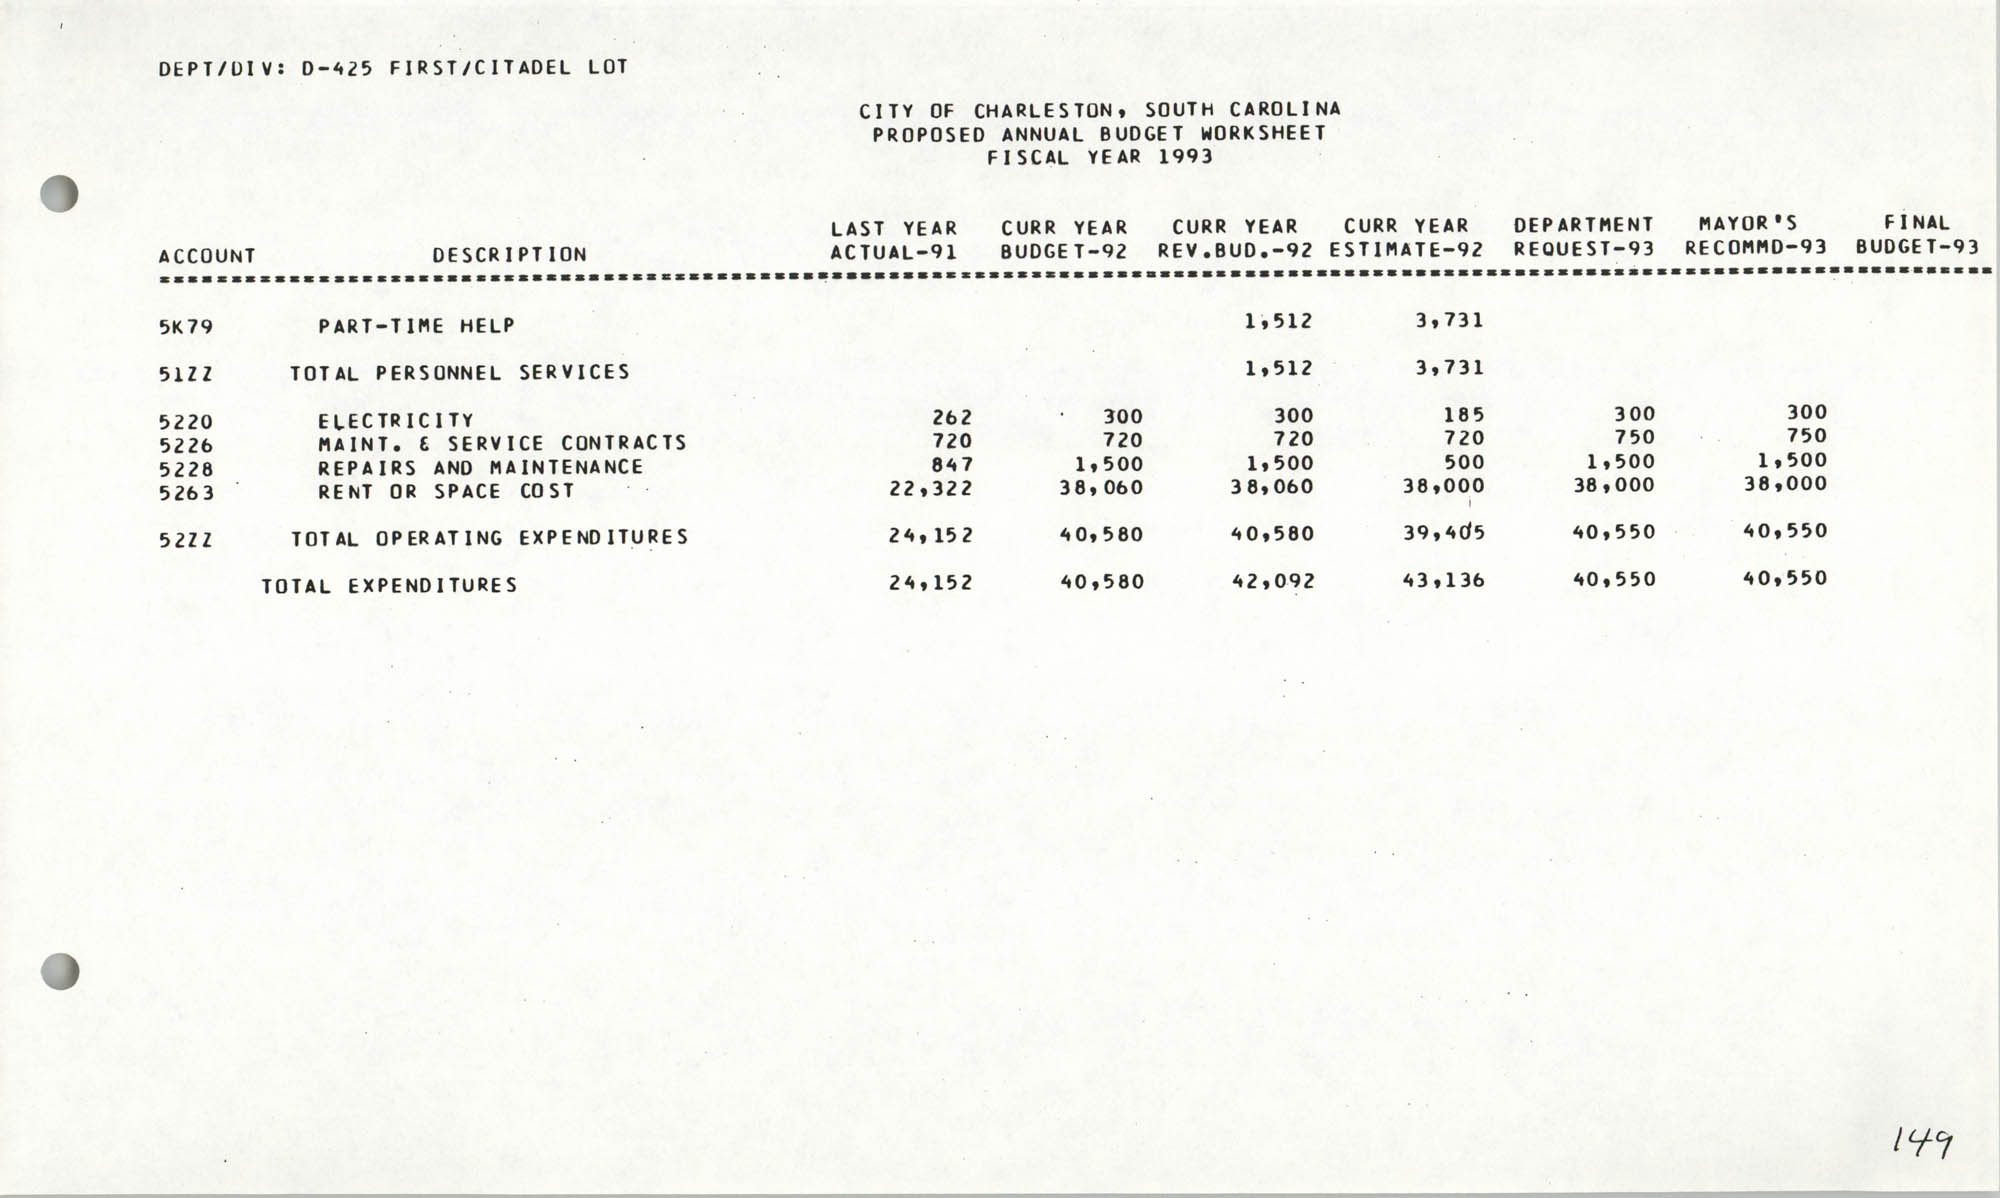 The City Council of Charleston, South Carolina, 1993 Budget, Page 149